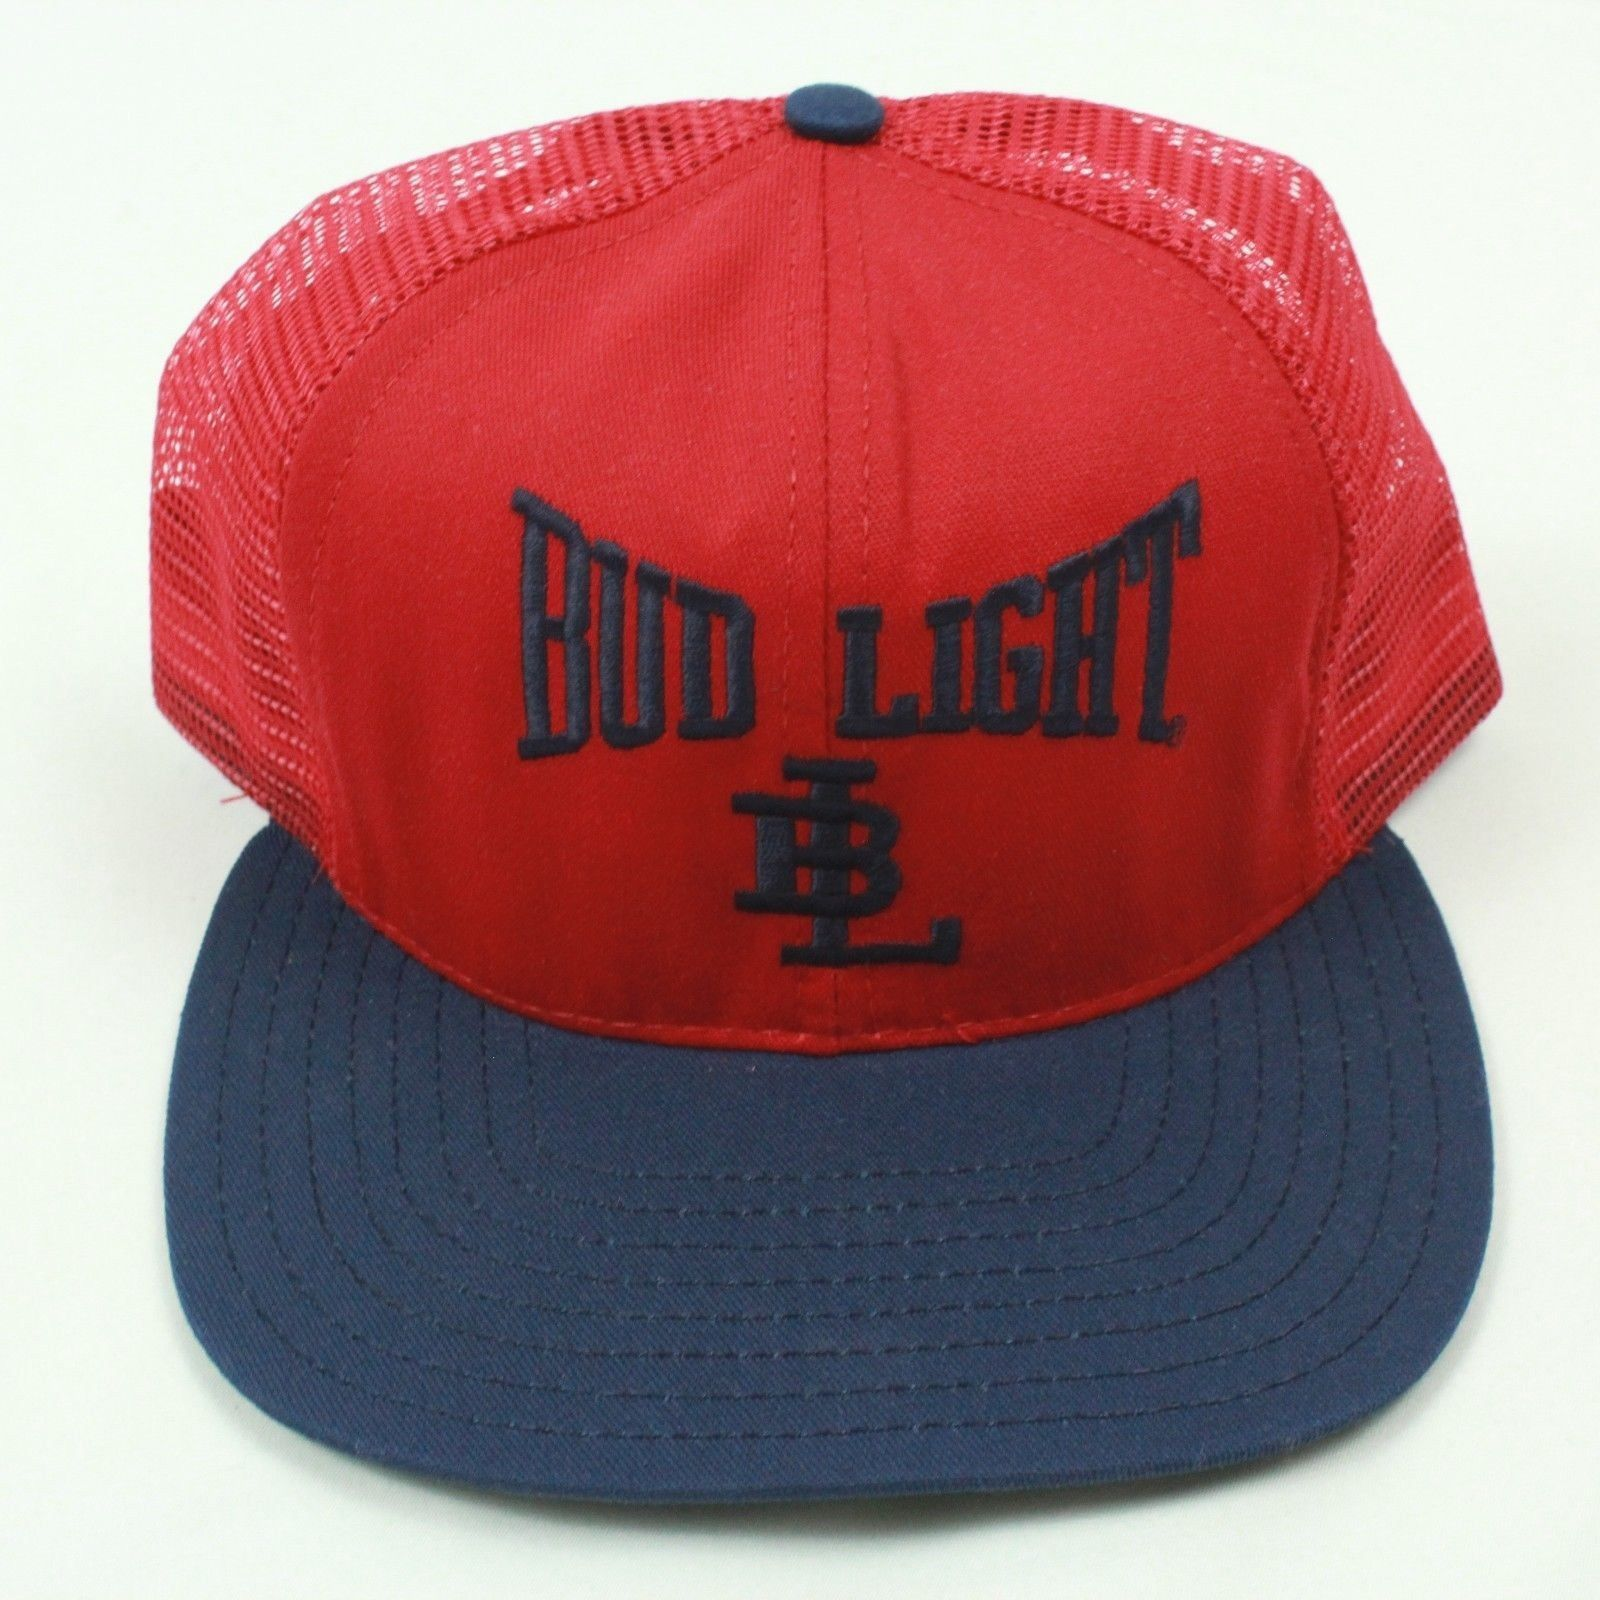 de2ab62e ... NEW VINTAGE Bud Light Trucker Hat Flat Bill Baseball Cap RARE OG  Snapback USA ...